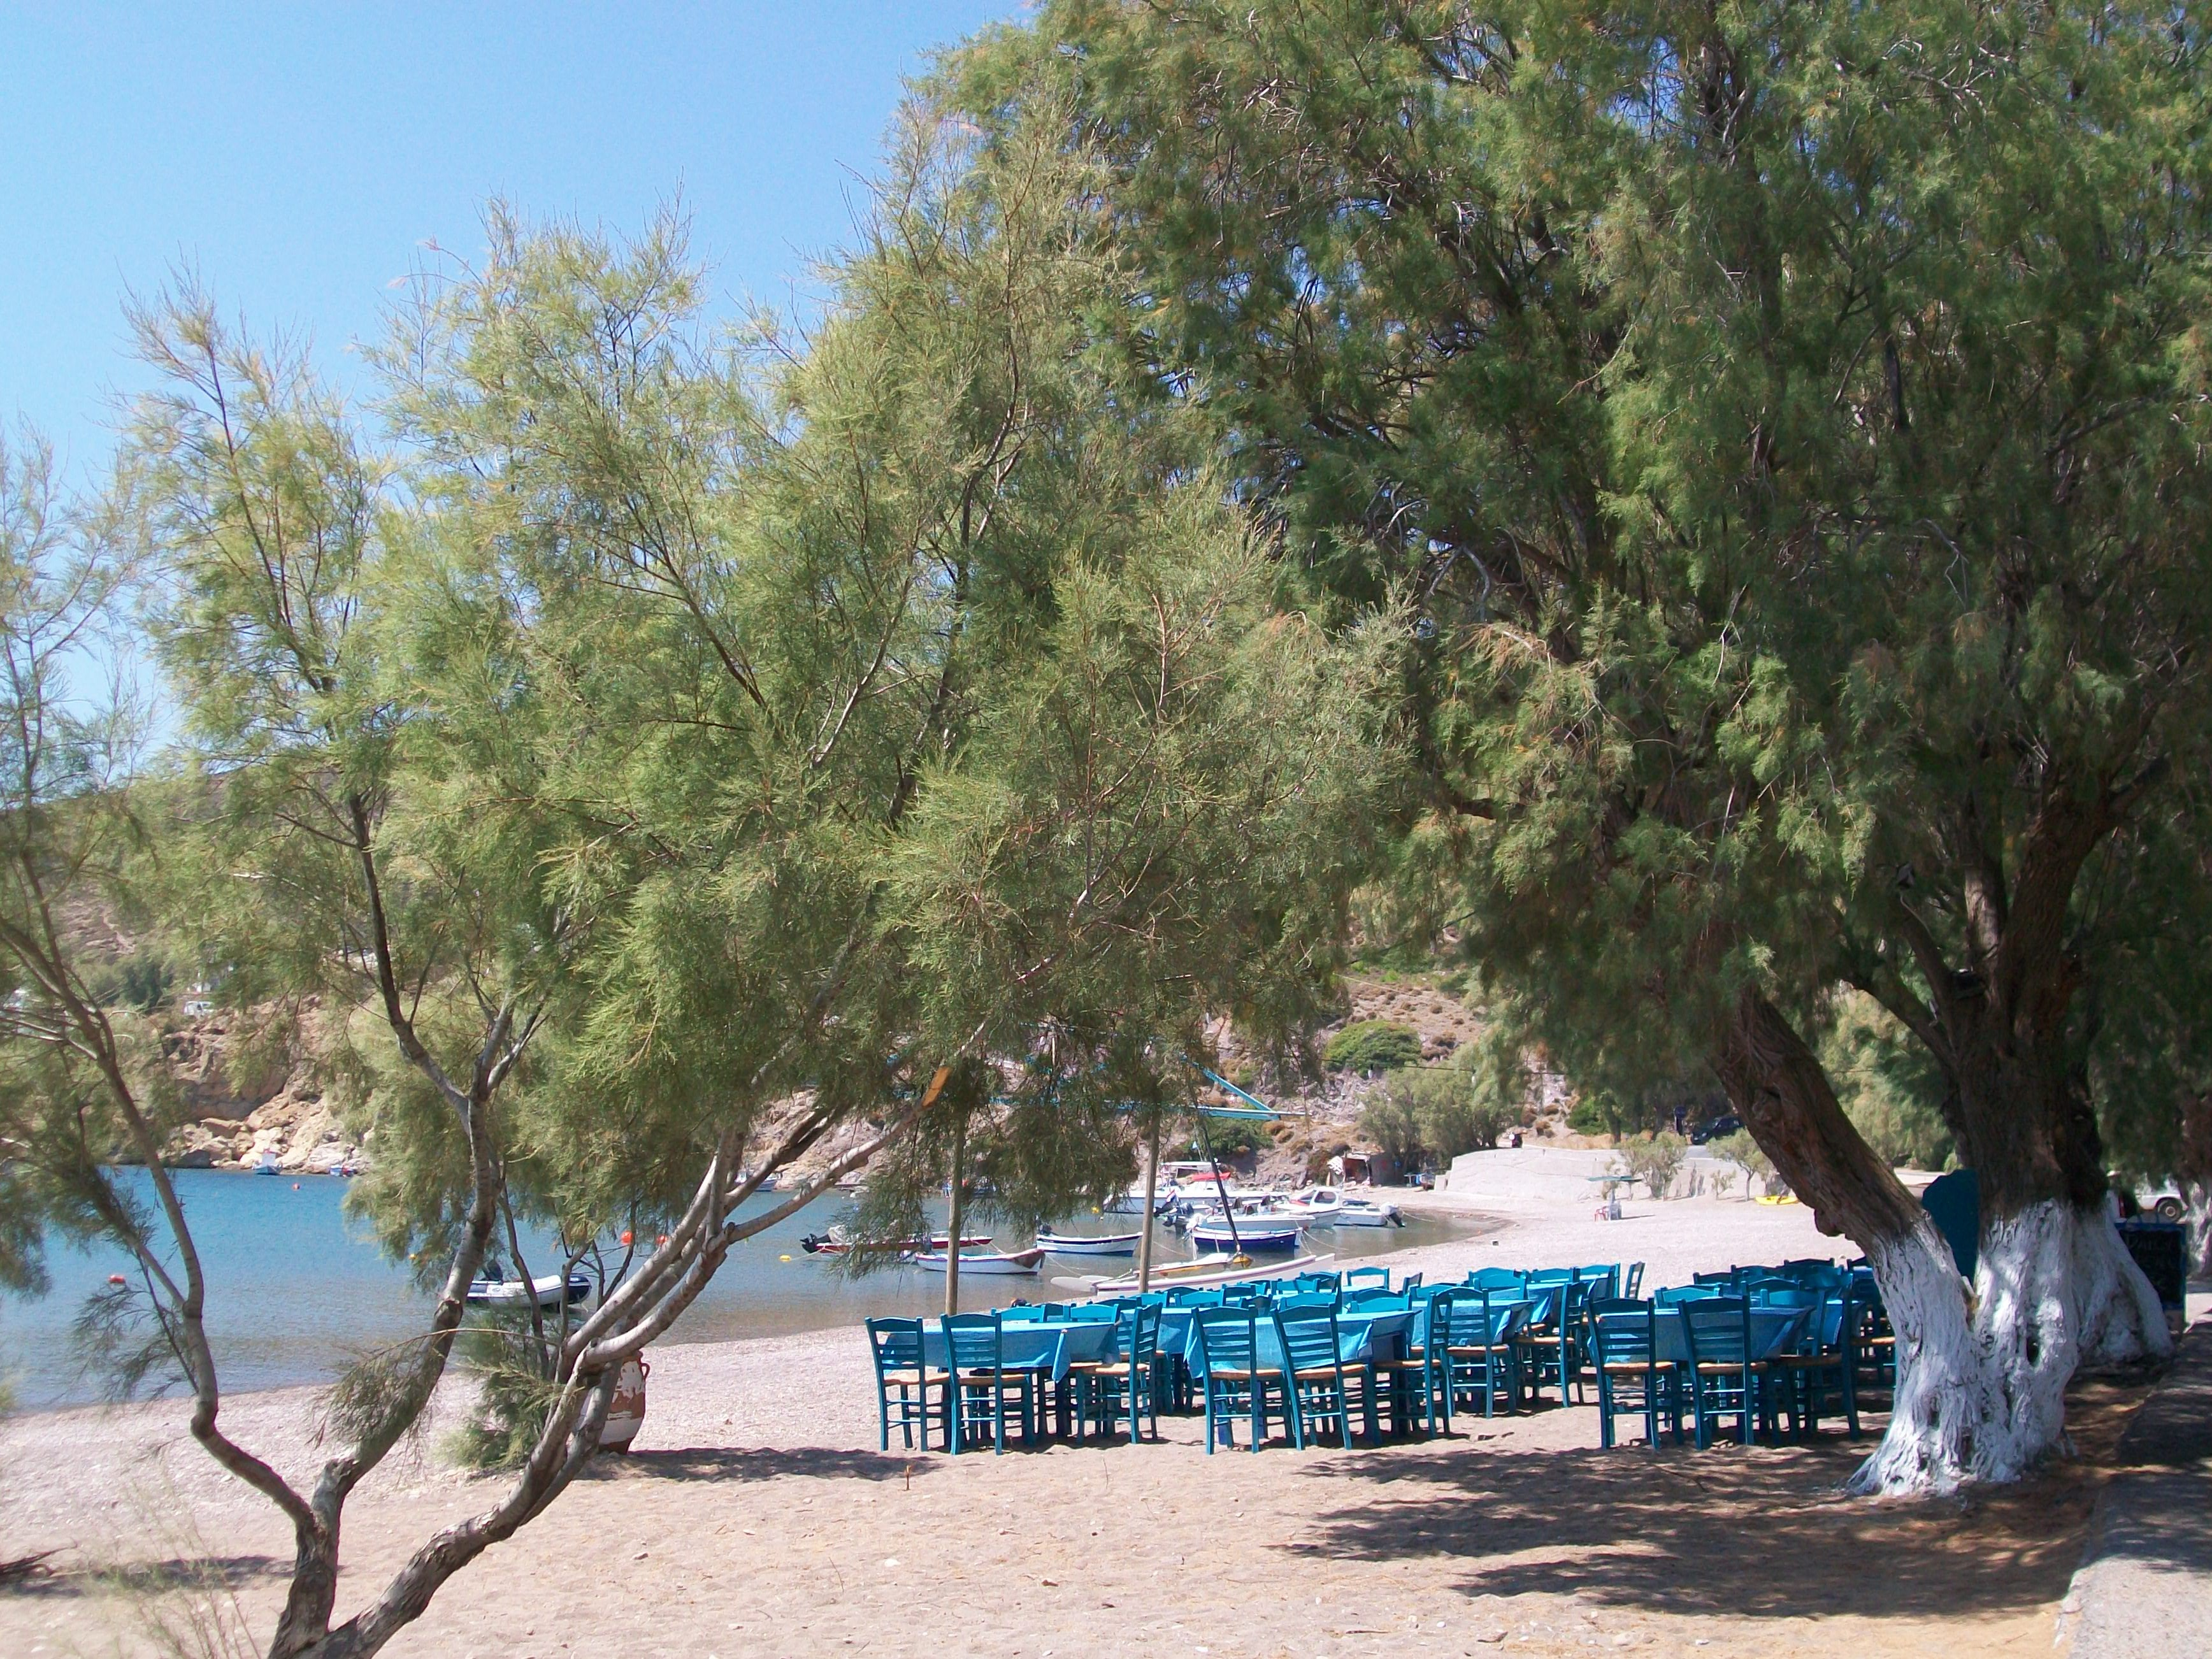 Mare - Pranzo in spiaggia a Kambos